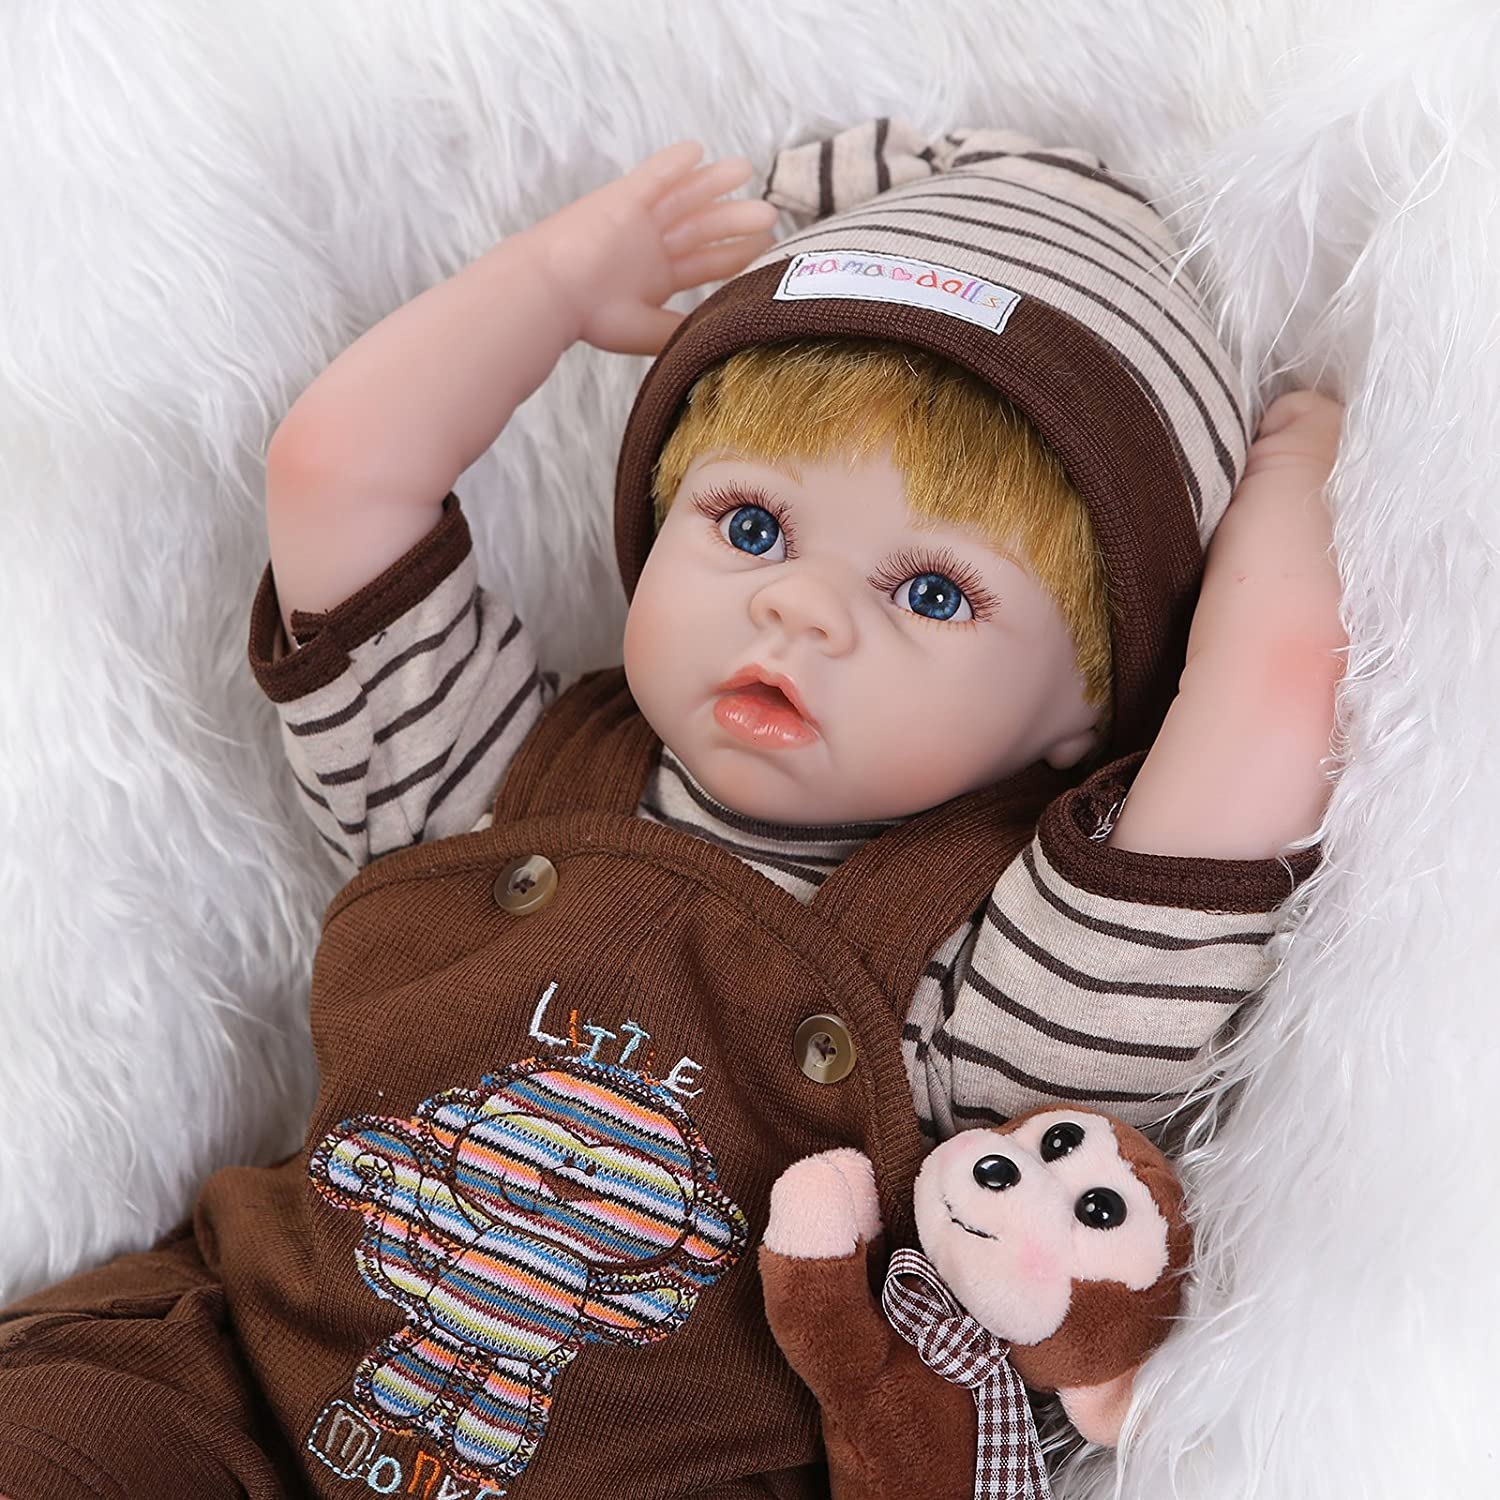 Lilith Reborn Dolls 22インチ55 cm Lovely Real Gentle Touch Rebornベビー人形Lifelike新生児幼児用ベッドTime Toyギフト   B07DFFVX7Q